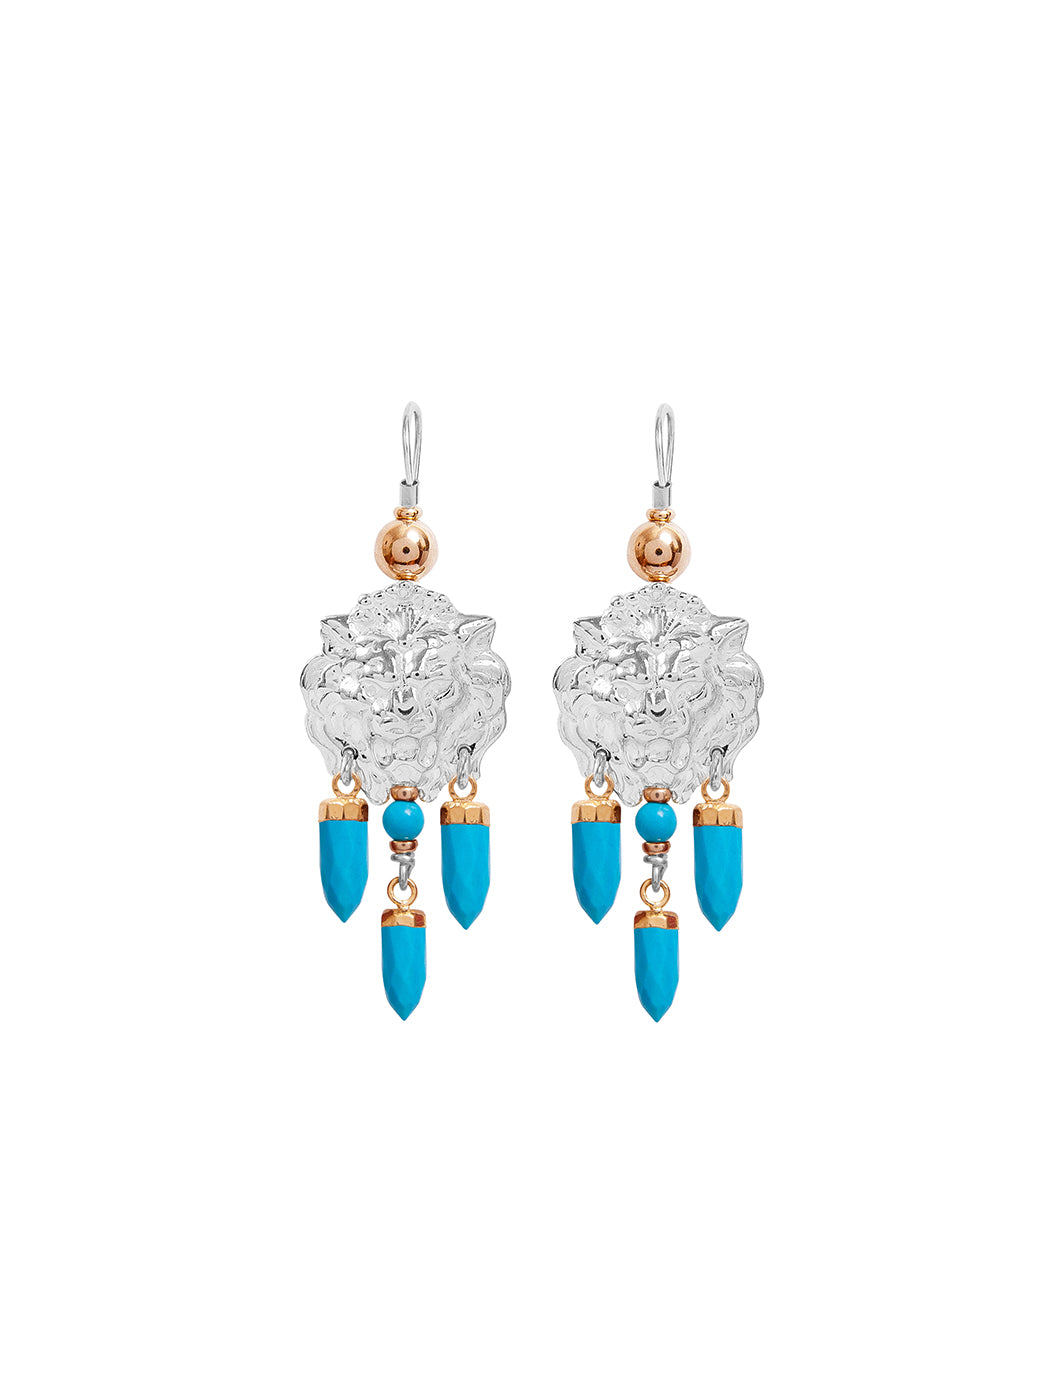 Fiorina Jewellery Taormina Earrings Turquoise